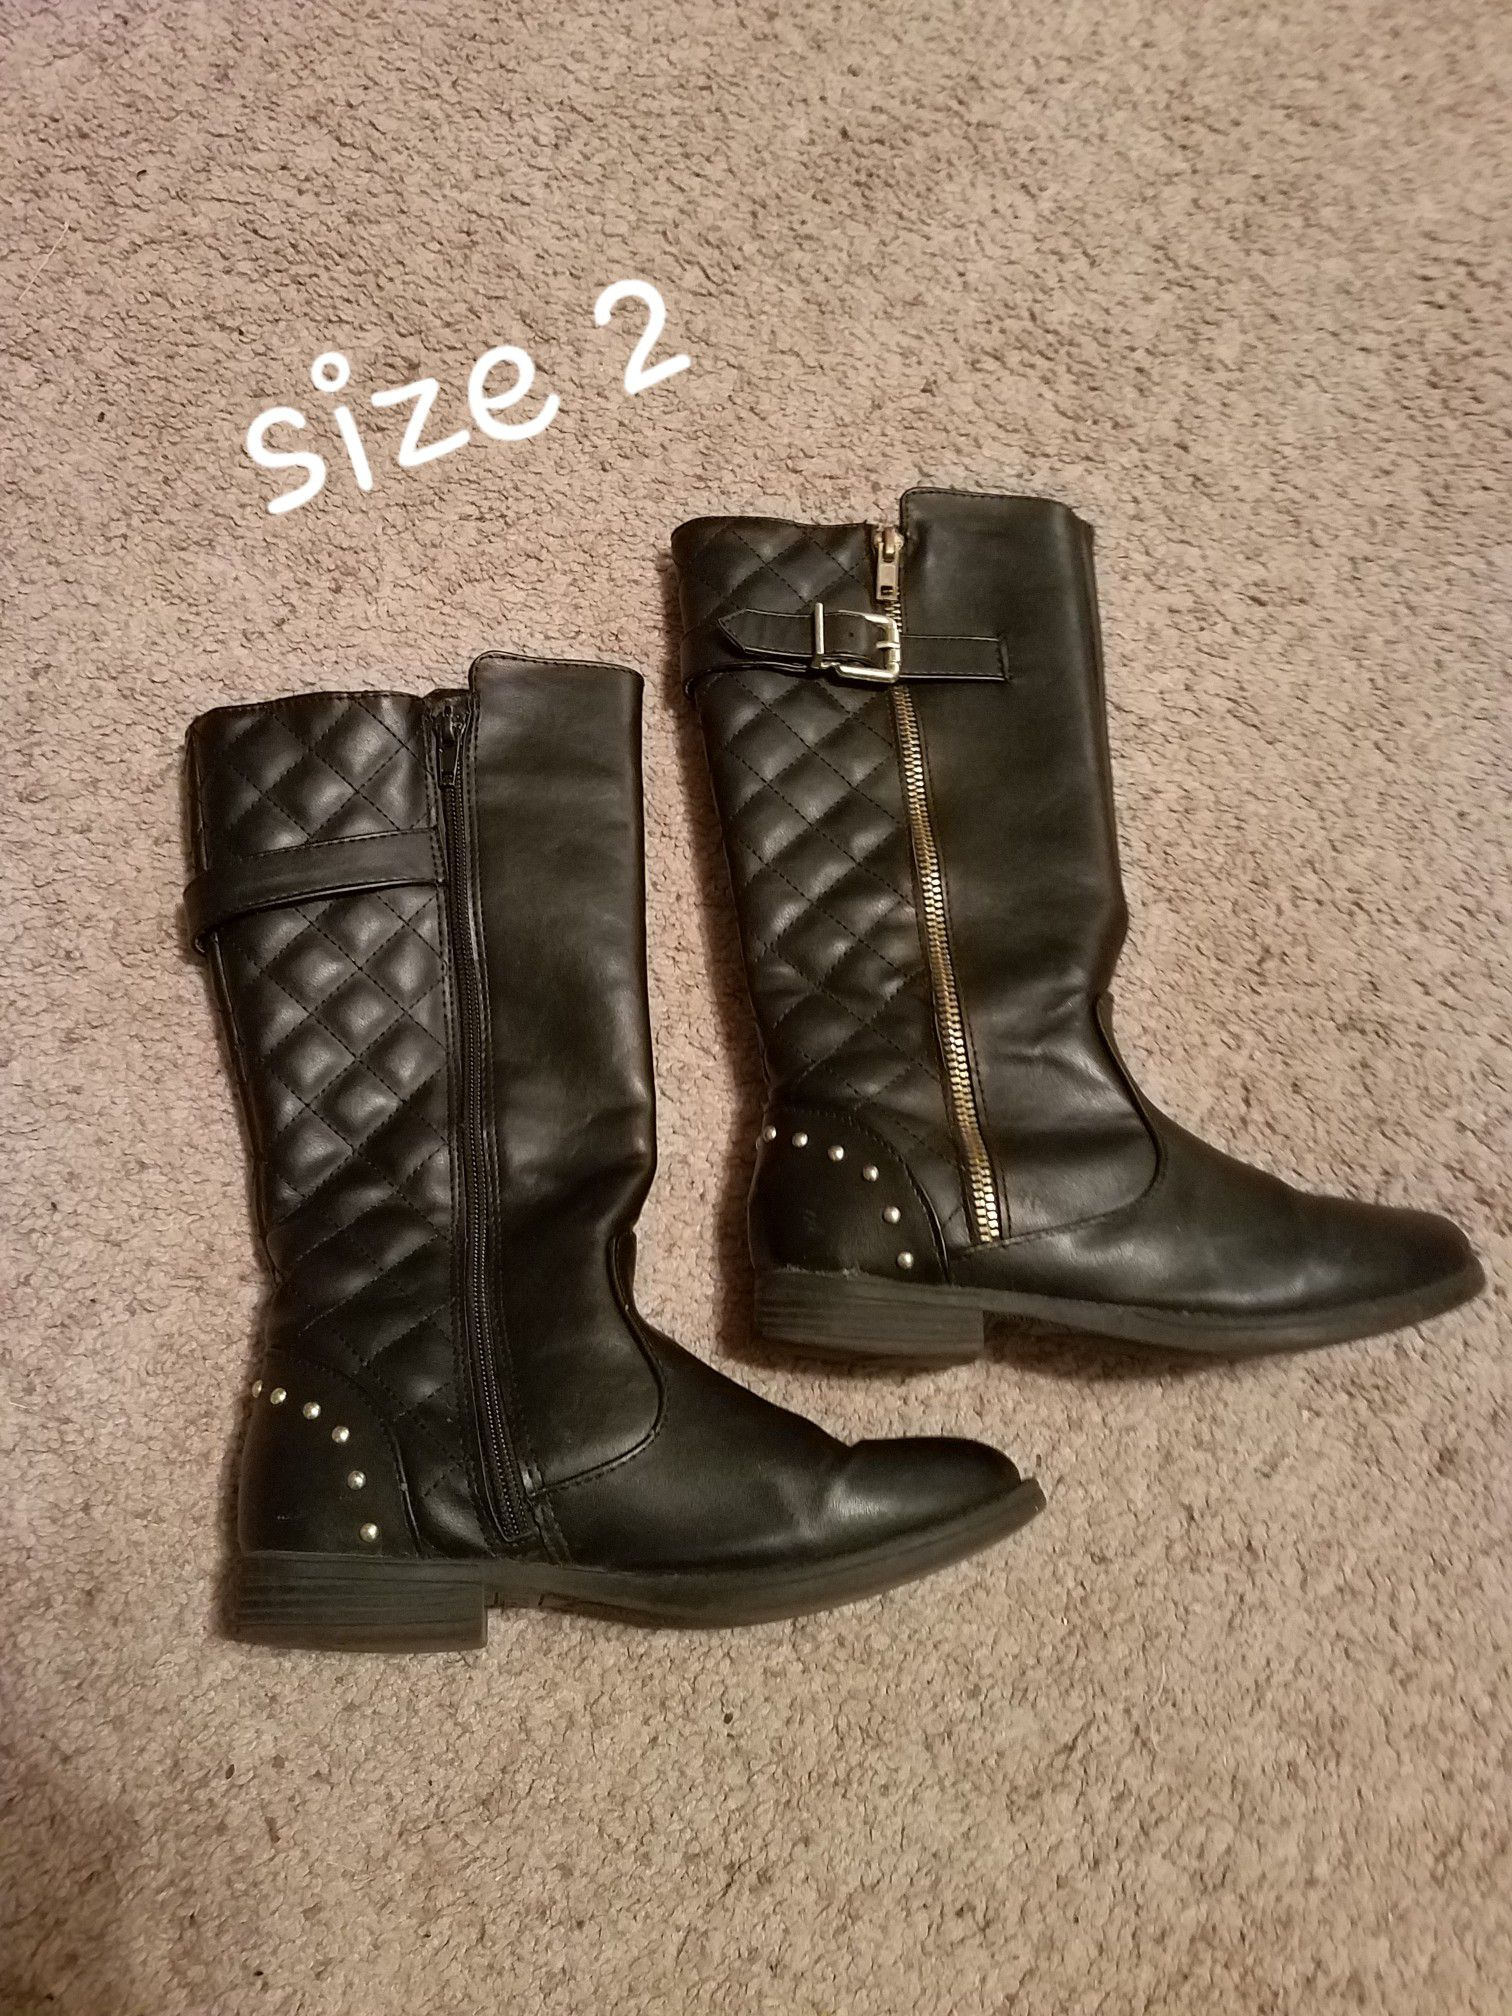 Girls boots- sizes 2-4